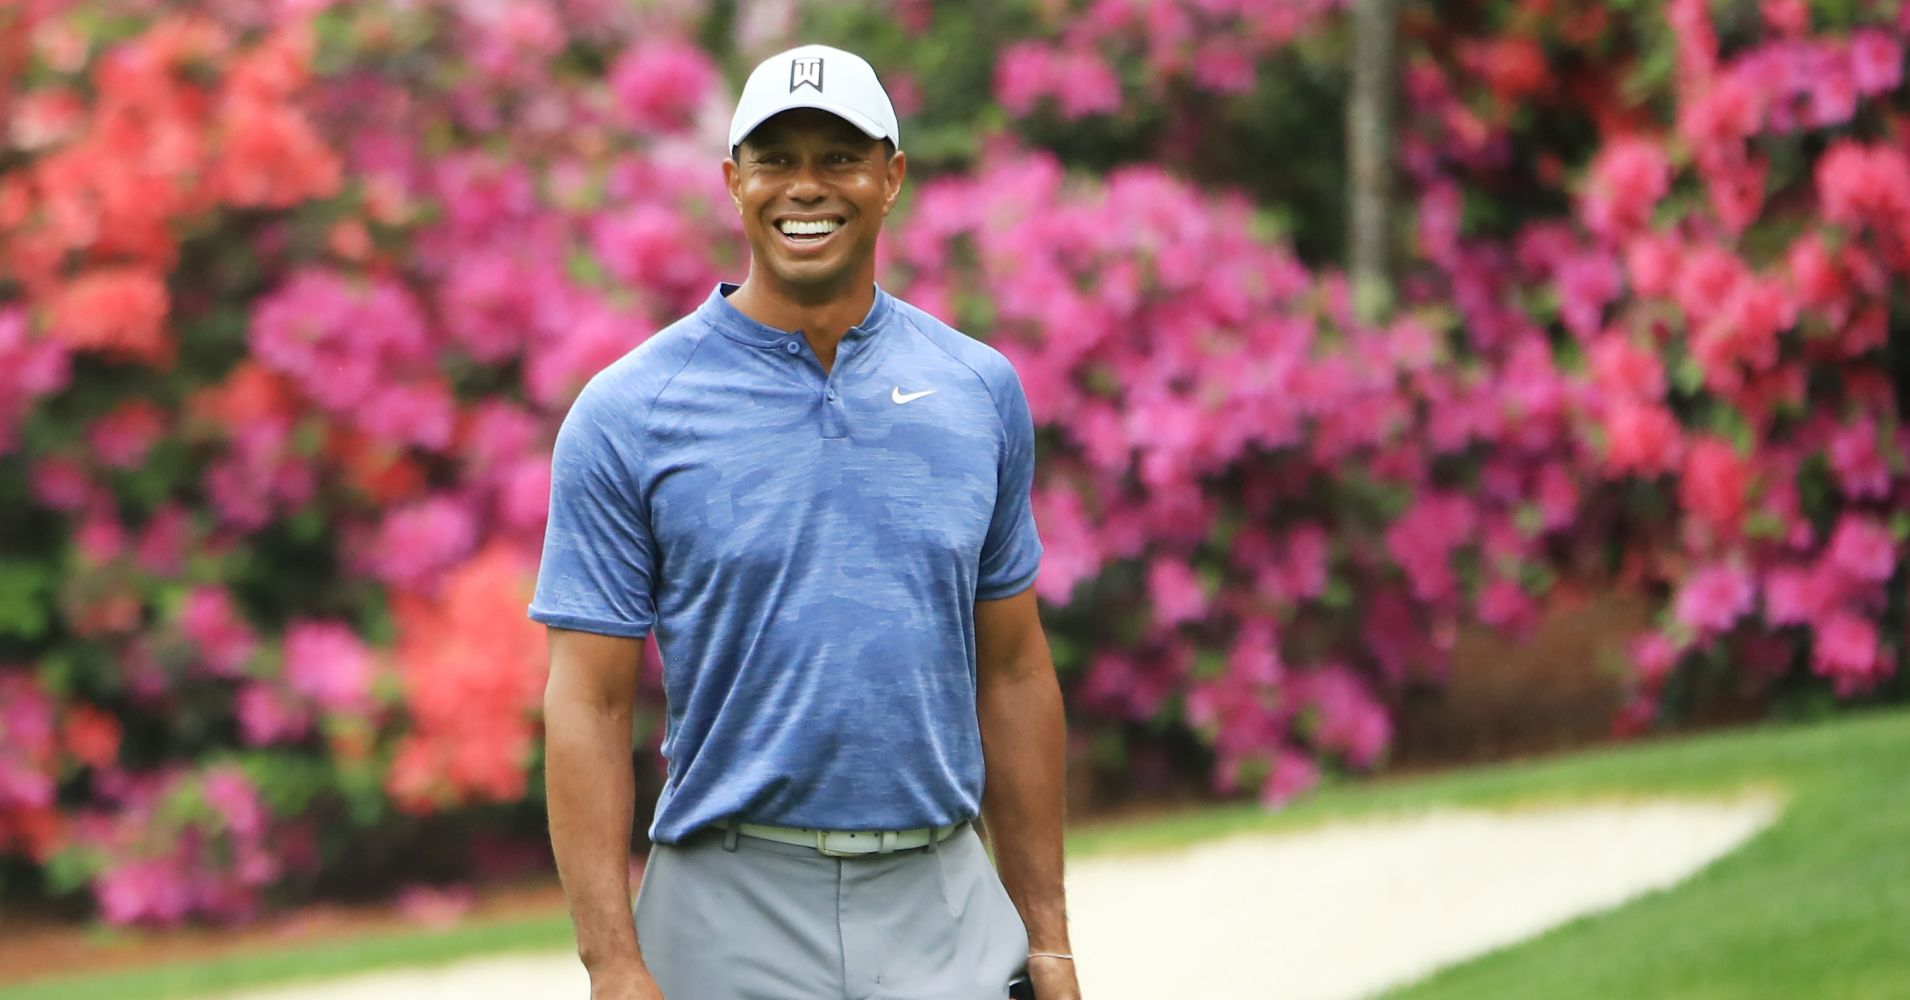 Tiger Woods during a practice round prior to The Masters at Augusta National Golf Club on April 08, 2019